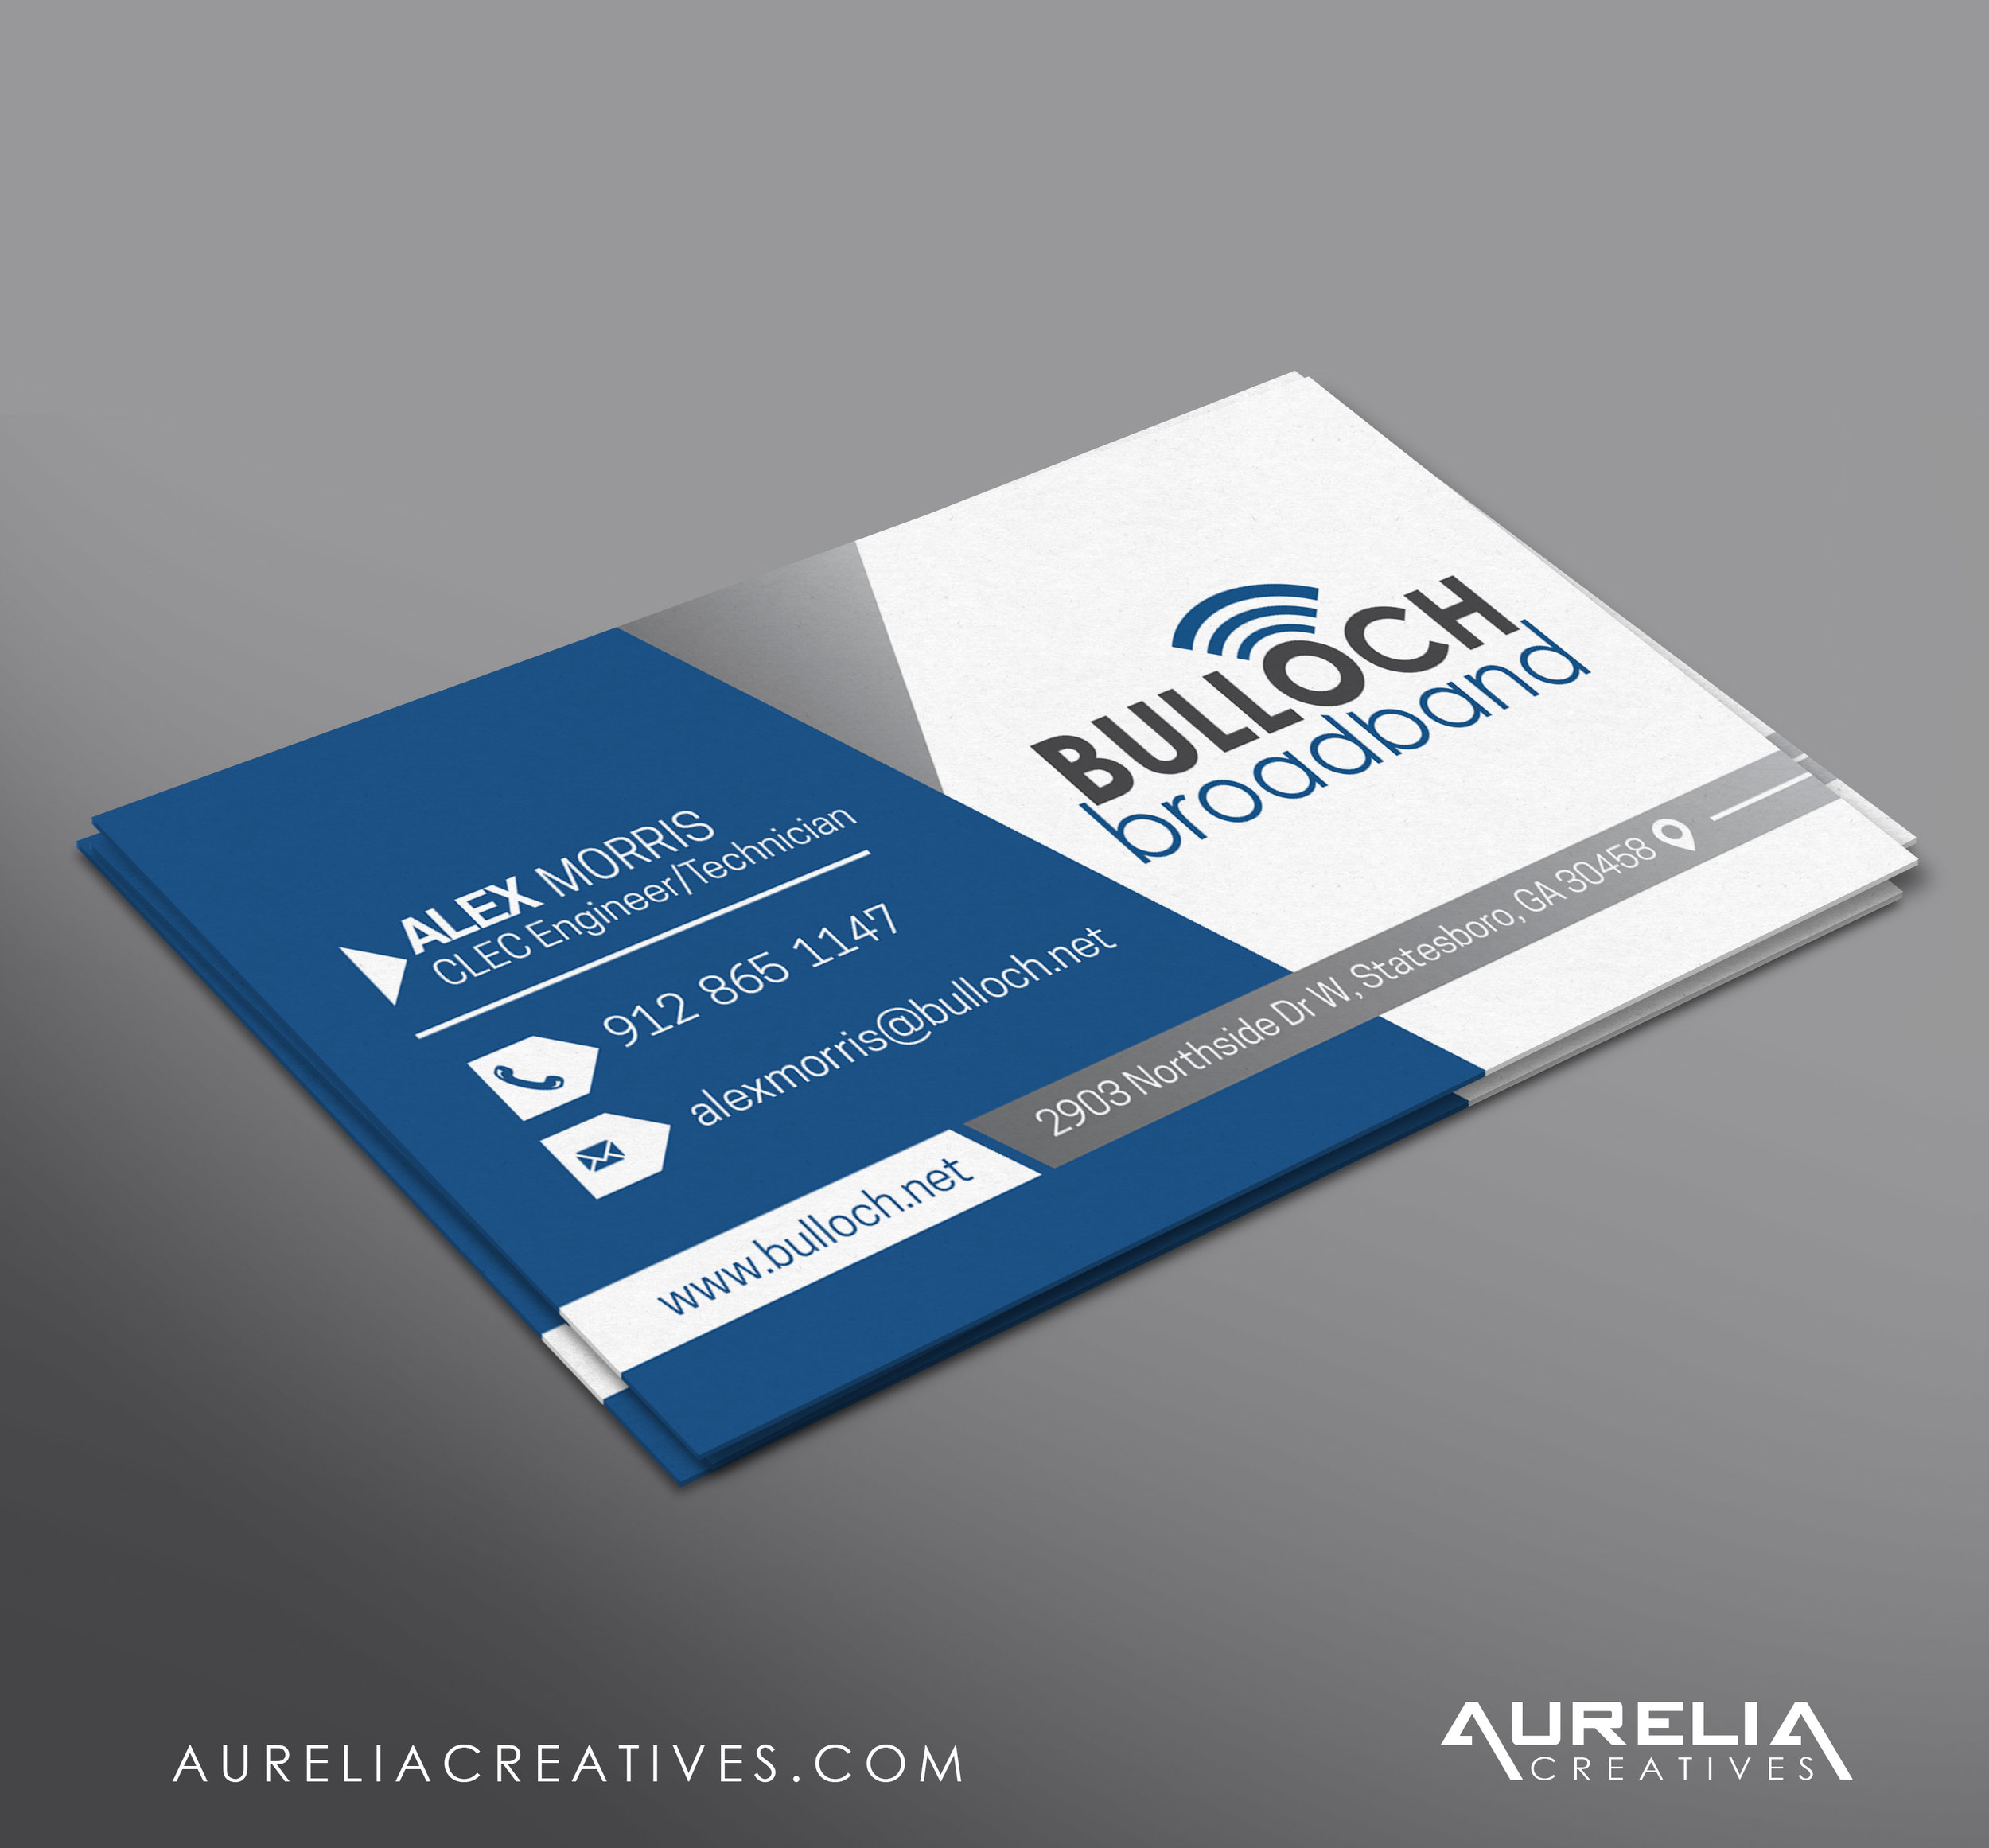 Bulloch-Broadband-Business-Cards.jpg